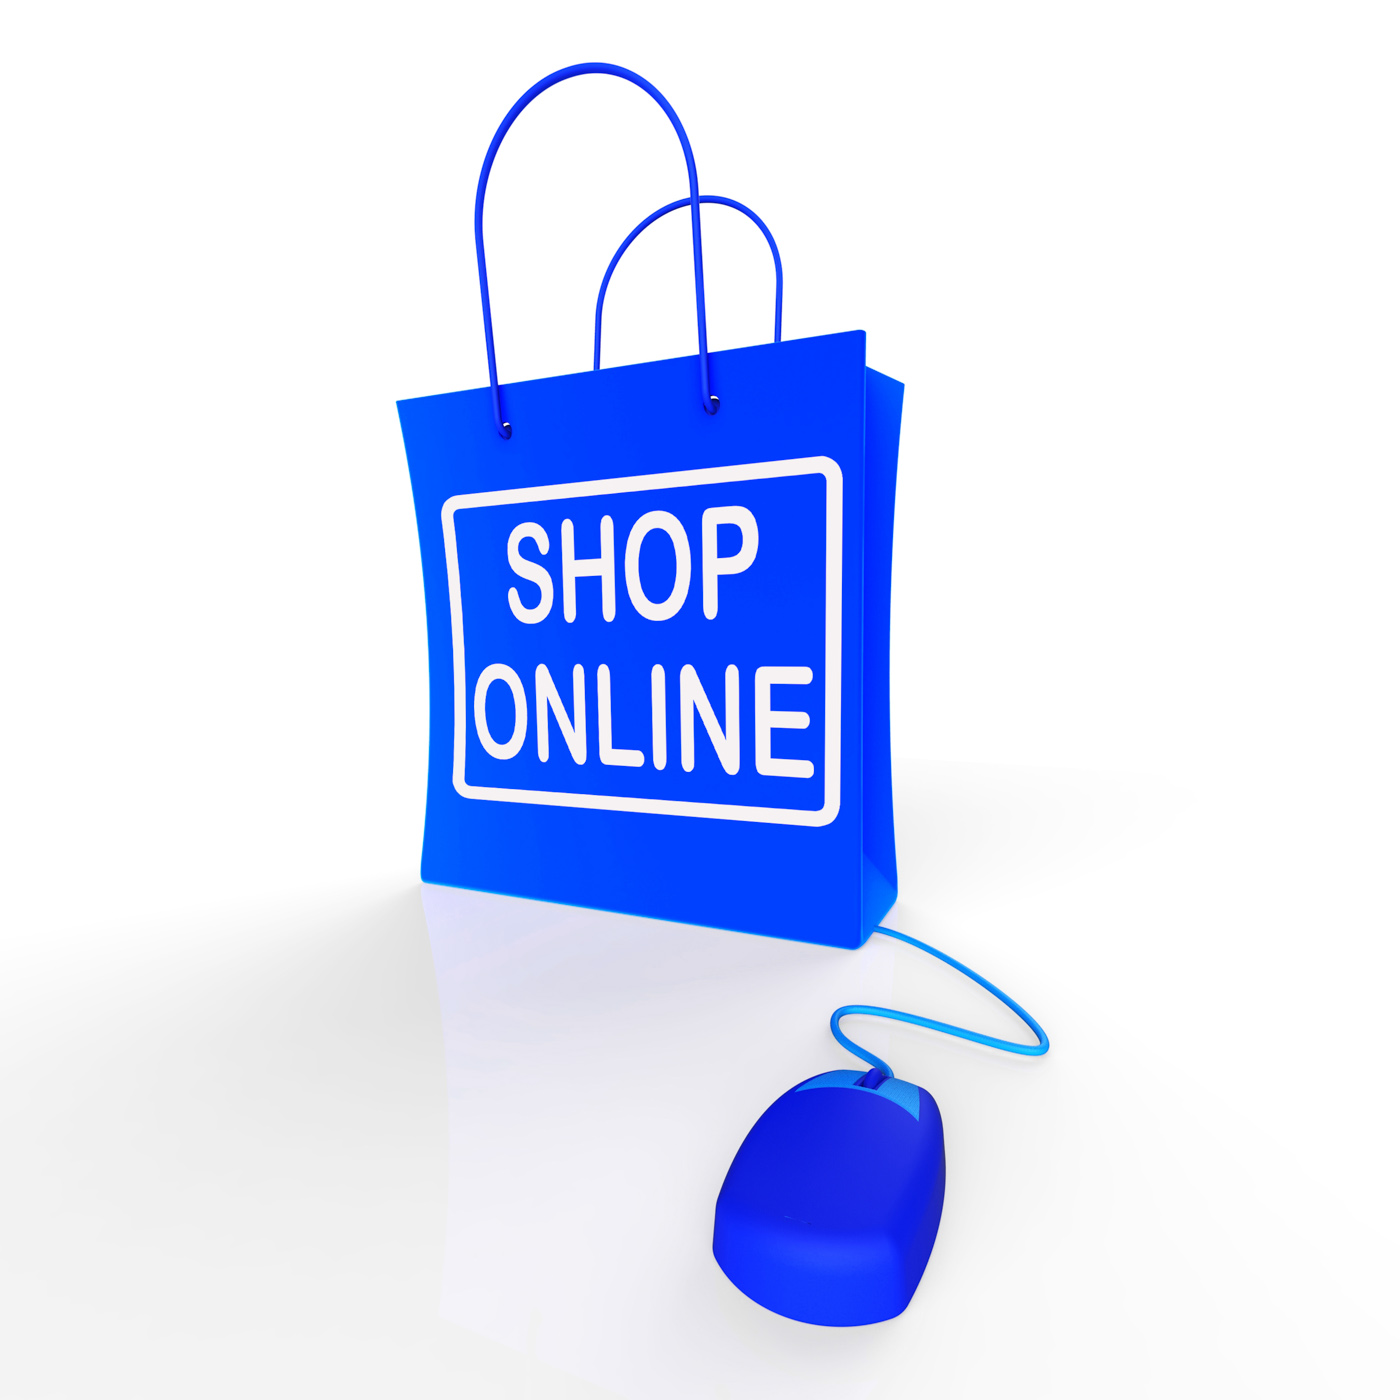 Shop online bag represents internet shopping and buying photo